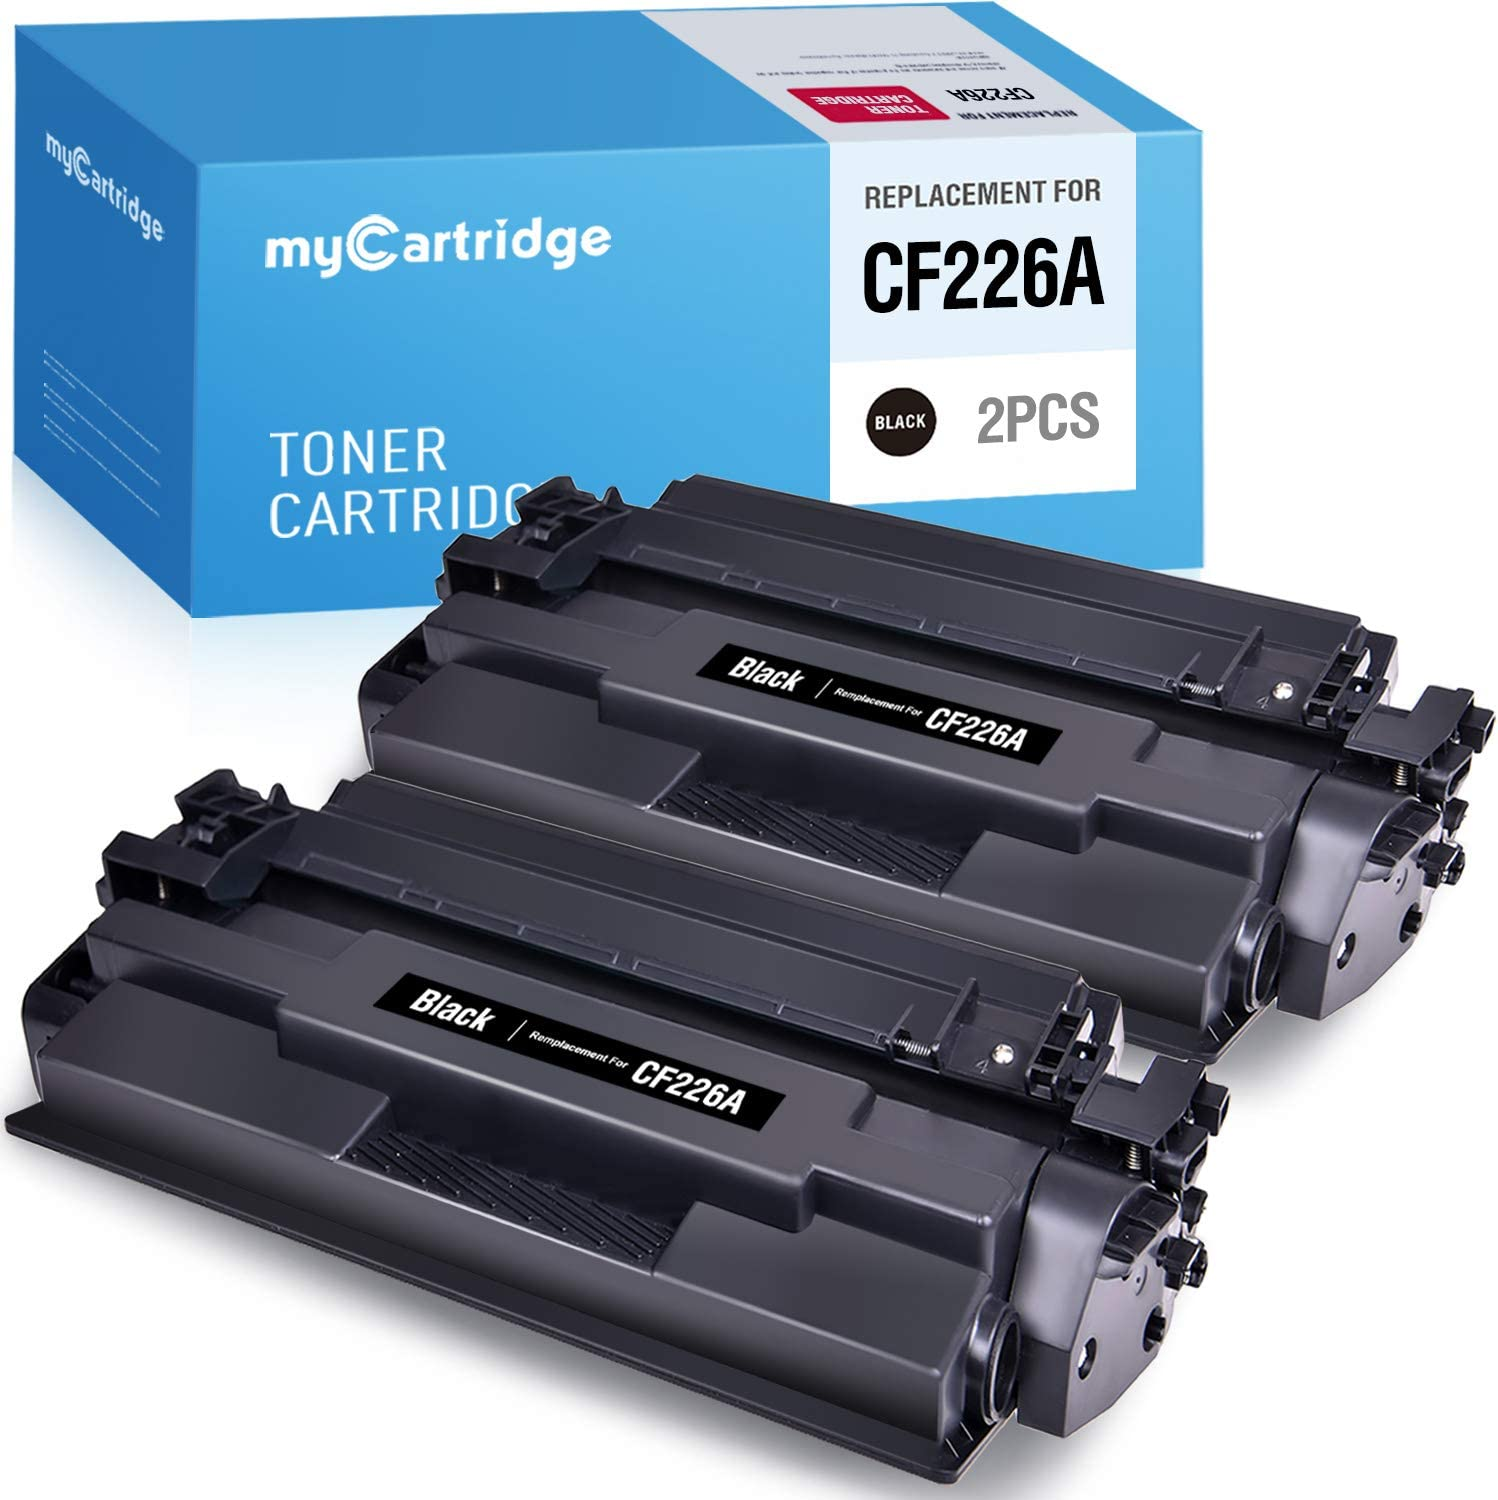 myCartridge Compatible Toner Cartridge Replacement for HP 26A CF226A Black 2-Pack High Yield Fit for Laserjet Pro M402n M402dn M402dw Laserjet Pro MFP M426fdw M426dw M426fdn M402 M426 Series Printer